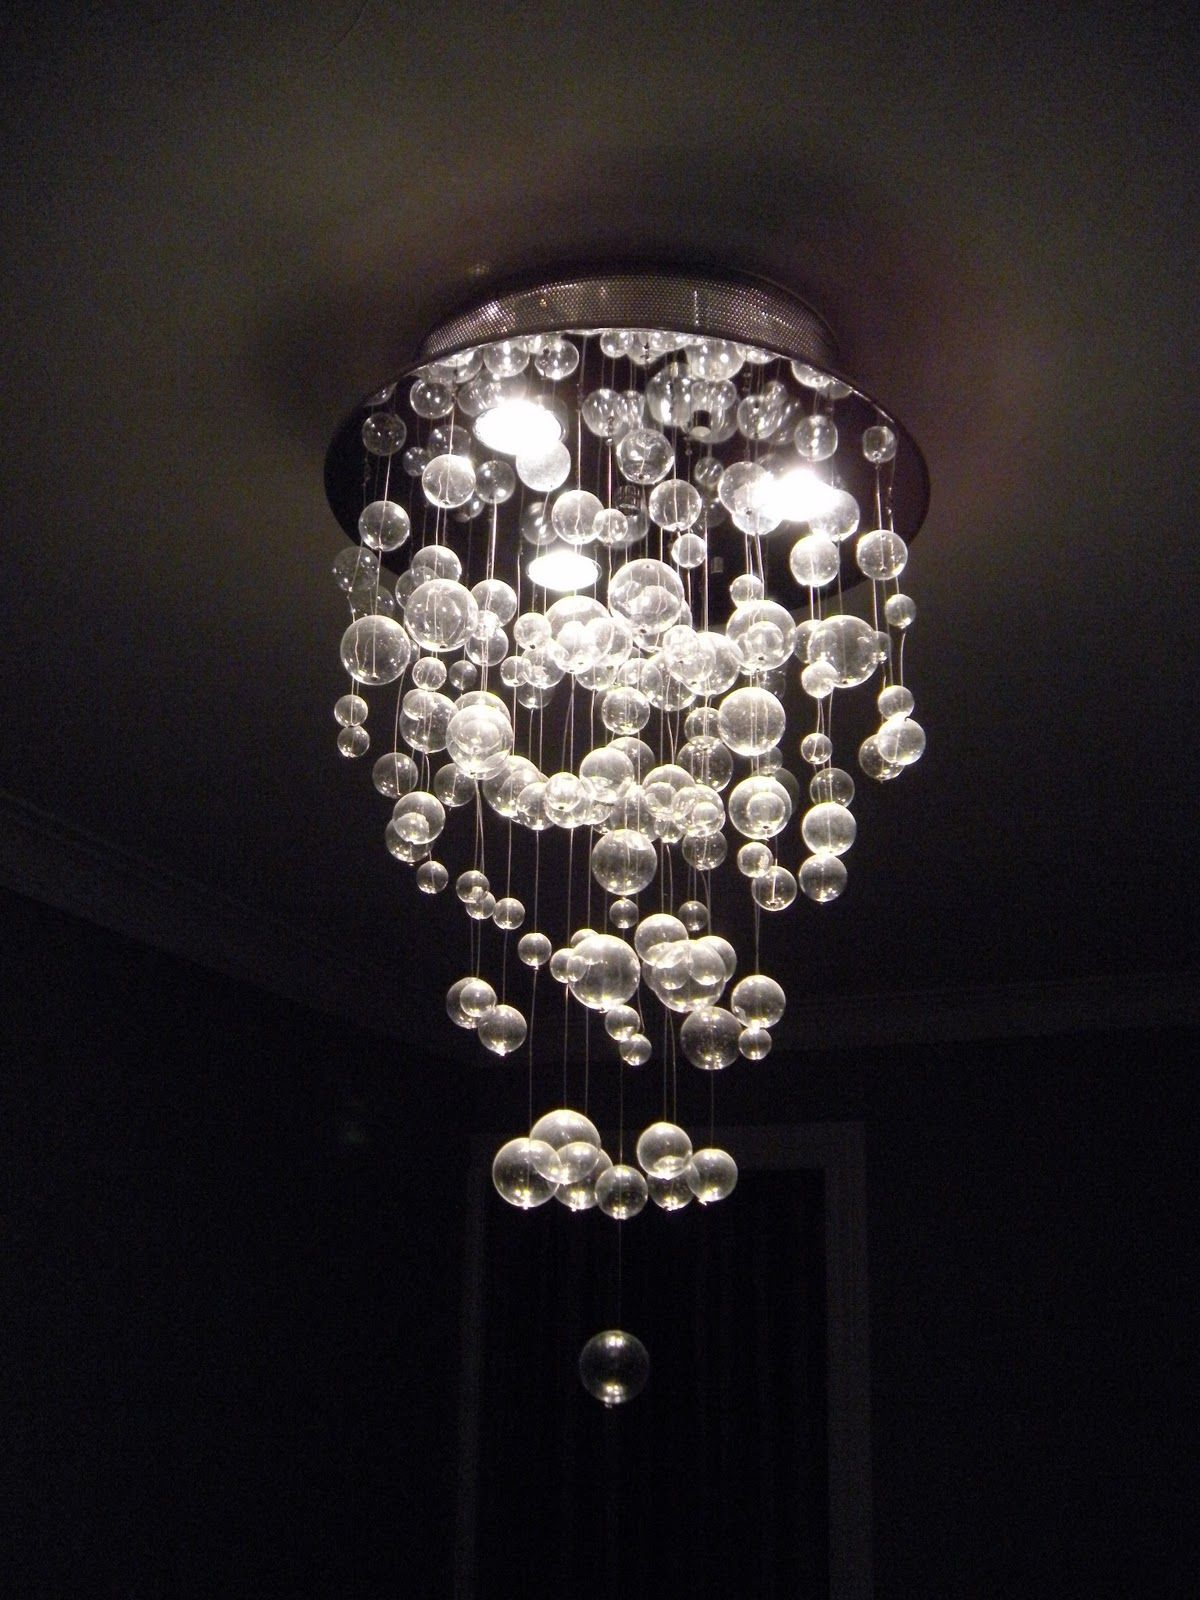 Lightings Charming Glass Bubble Chandelier With Round Holder In Chrome As Modern Ceiling Lights Fixtures Ideas Lavish Lighting Artworks